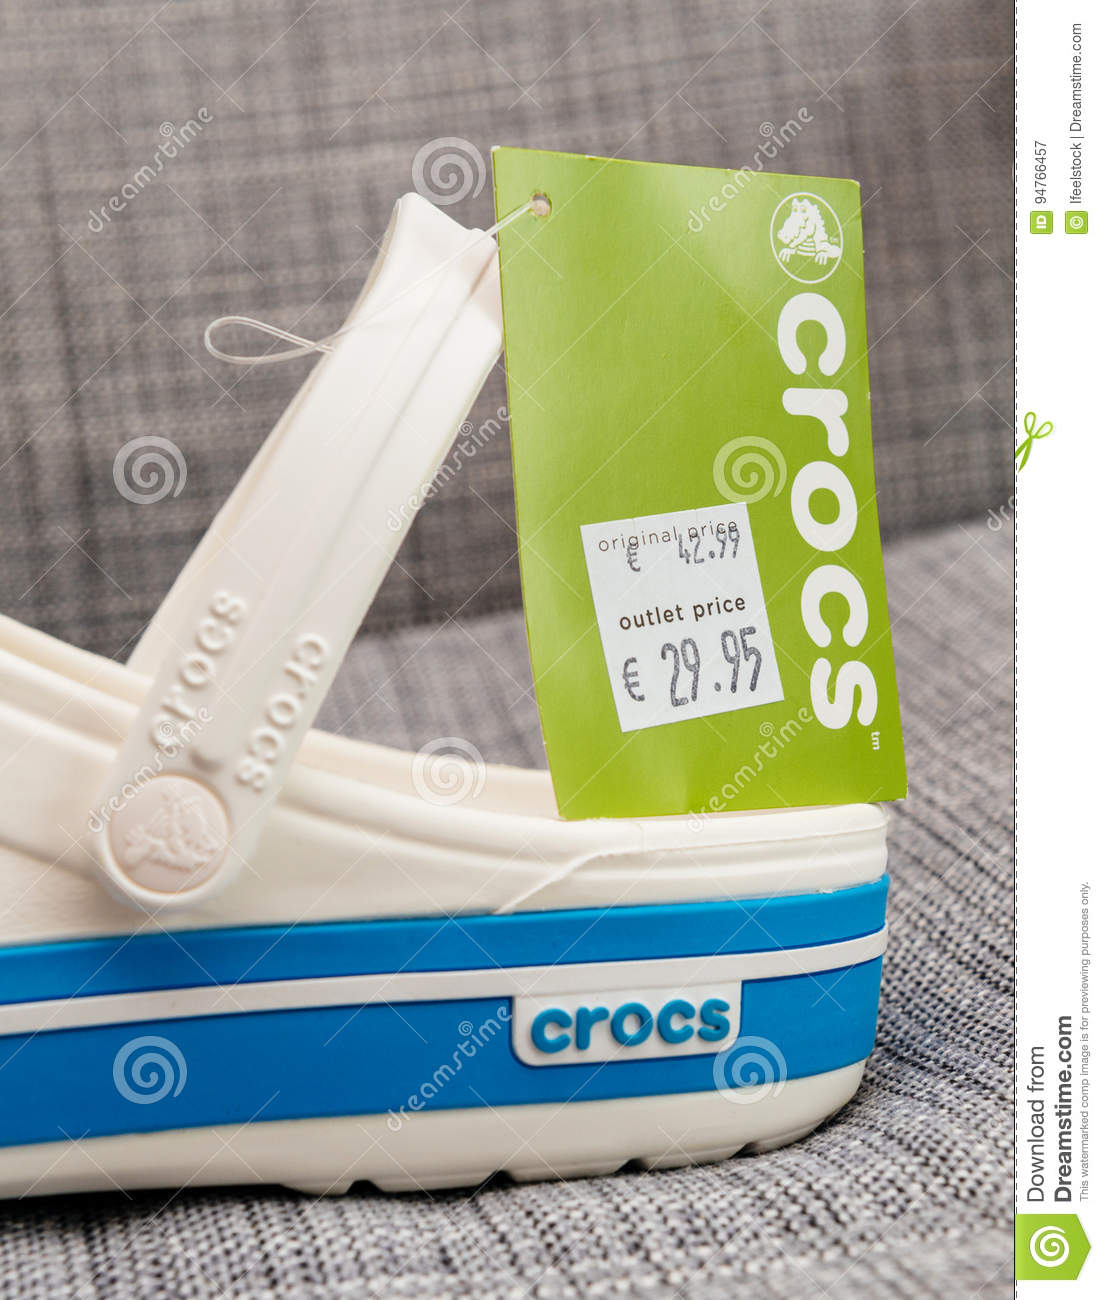 9d28662709bdd Crocs Clogs Shoes With Regular And Outlet Price Editorial ...